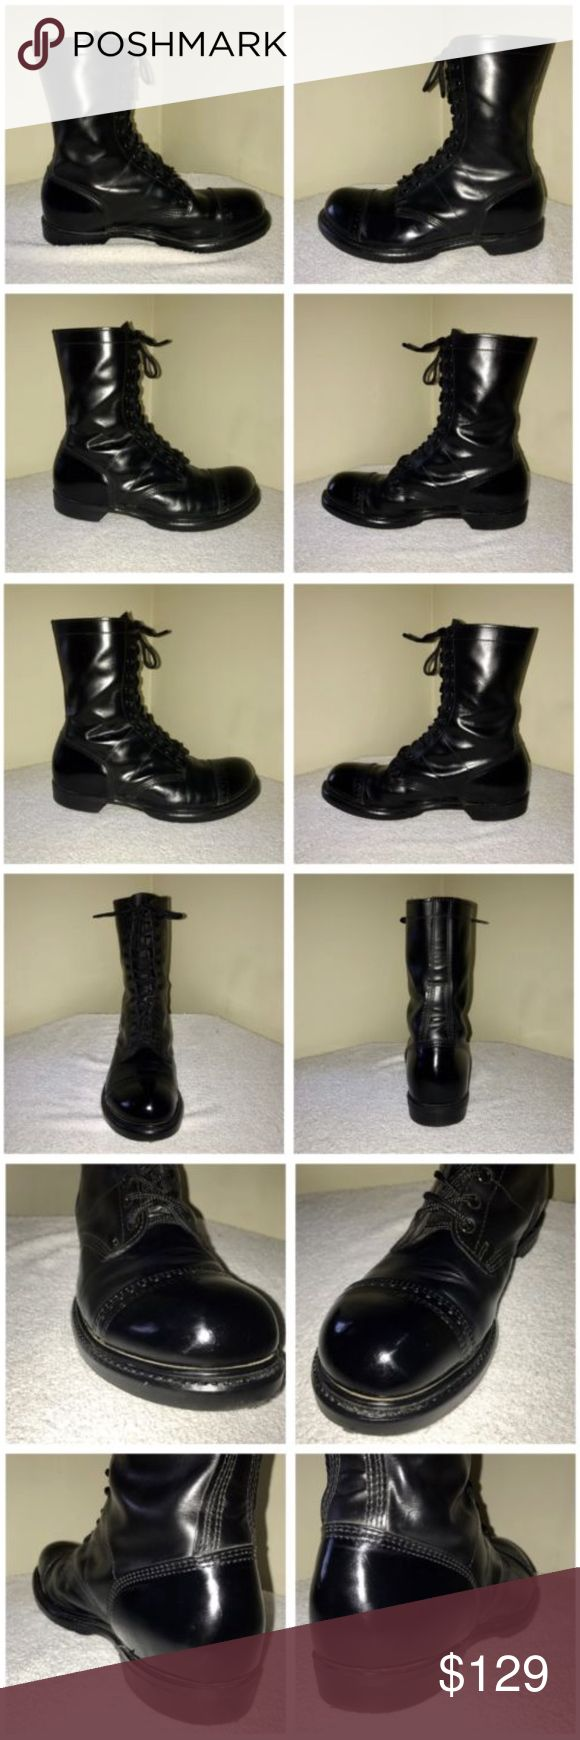 "Corcoran Black 10"" Cap Toe Jump Boot 13 E These boots were purchased, shined and only used in one military ceremony. They are in amazing condition and comes from a smoke free environment. There are no tears or rips.   Heel Height- 1 Inch Total Height- 11 Inches Width- 4.75 Inches Length- 13 Inches  Military Approved  Performance ""Split Shineable"" Leather  Unlined  Internal Ankle Support  PORON® Cushioned Insole  Steel Shank for Support  Garrison Army Munson Last for Superior Fit  Heavy Duty…"